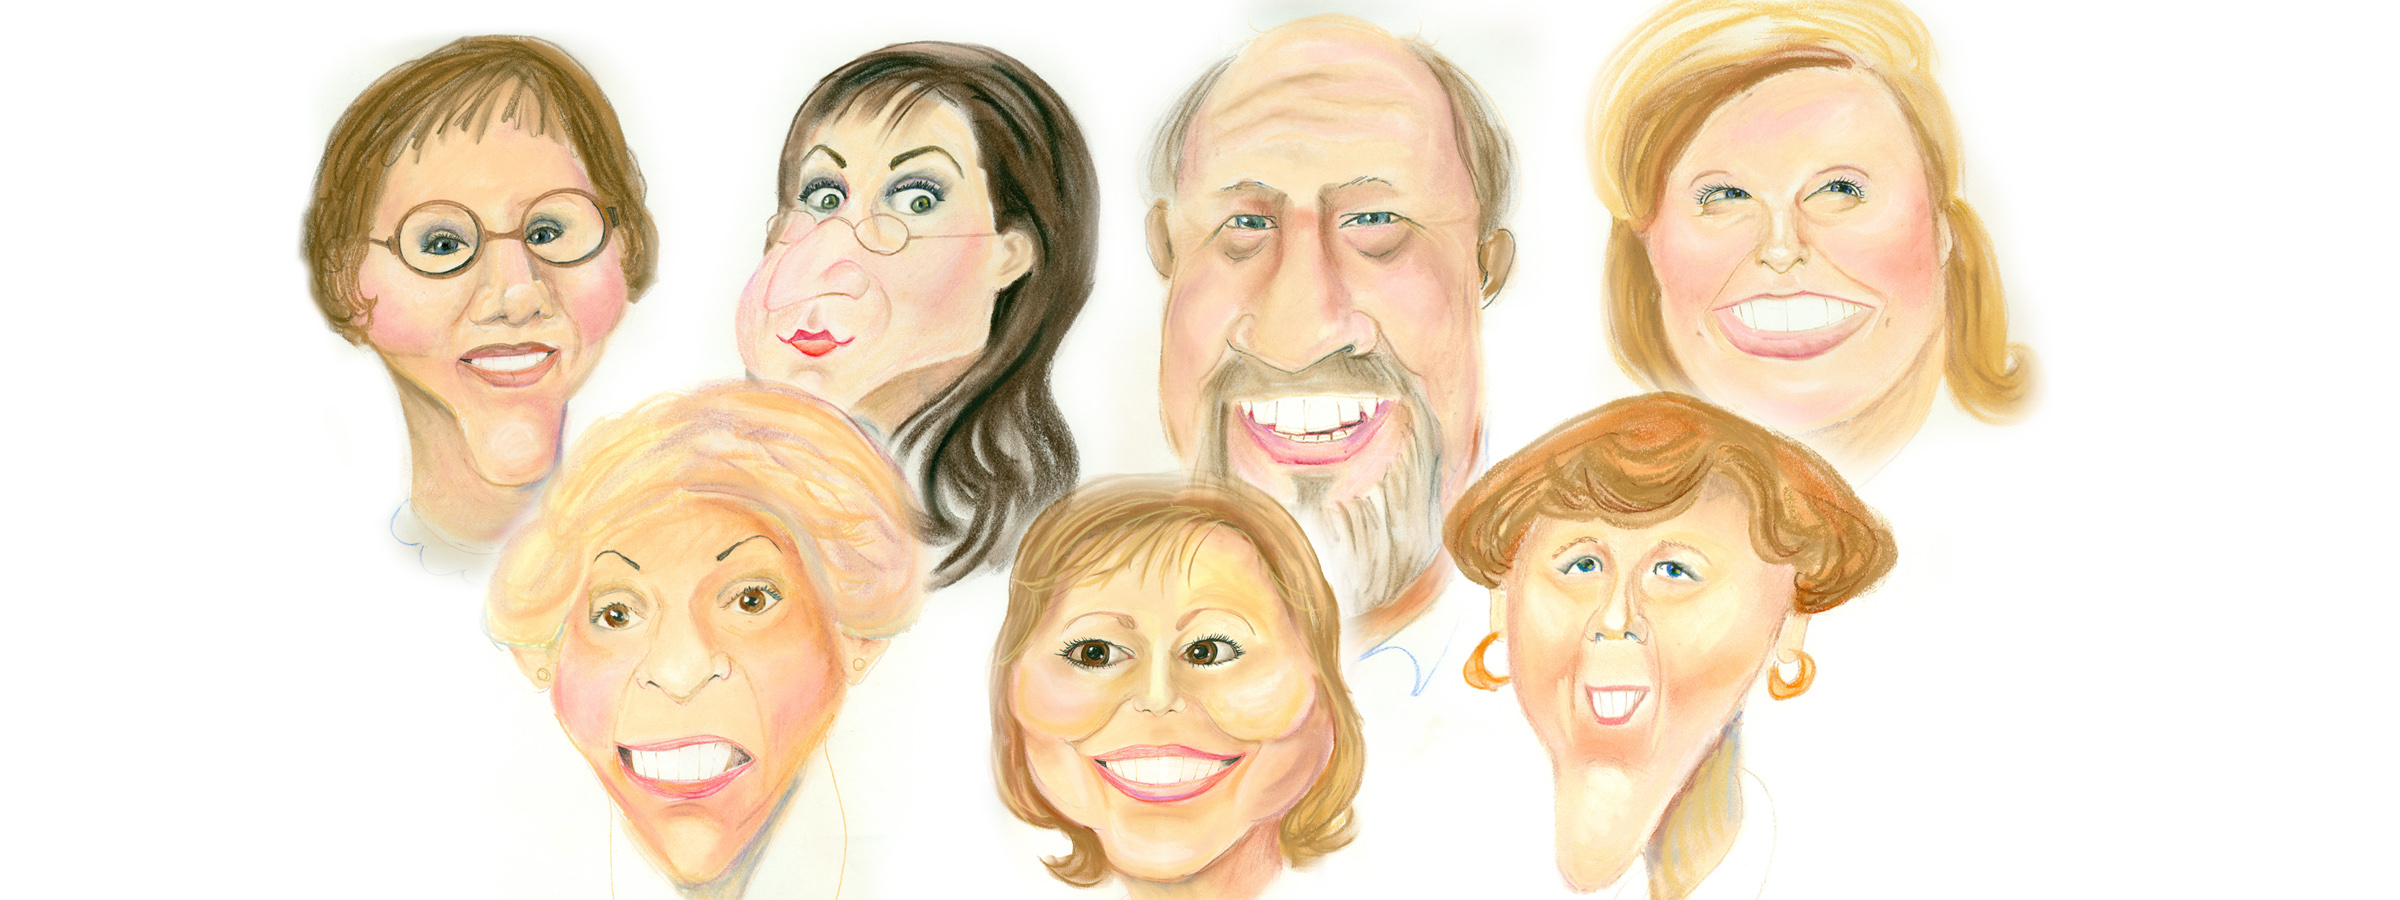 agency caricature group2019